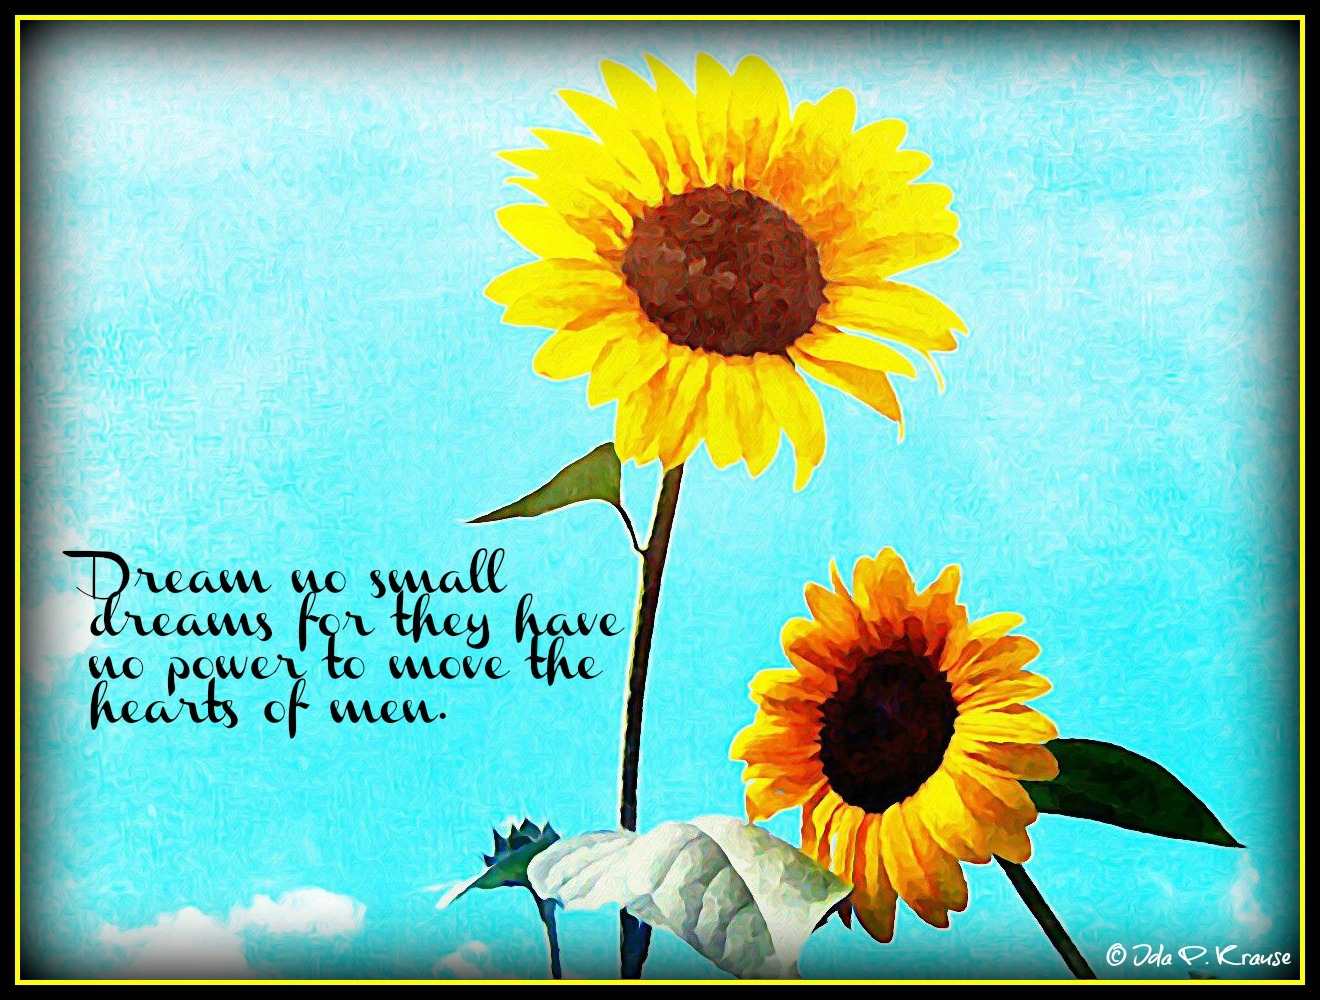 Sunflowers Tumblr Quotes